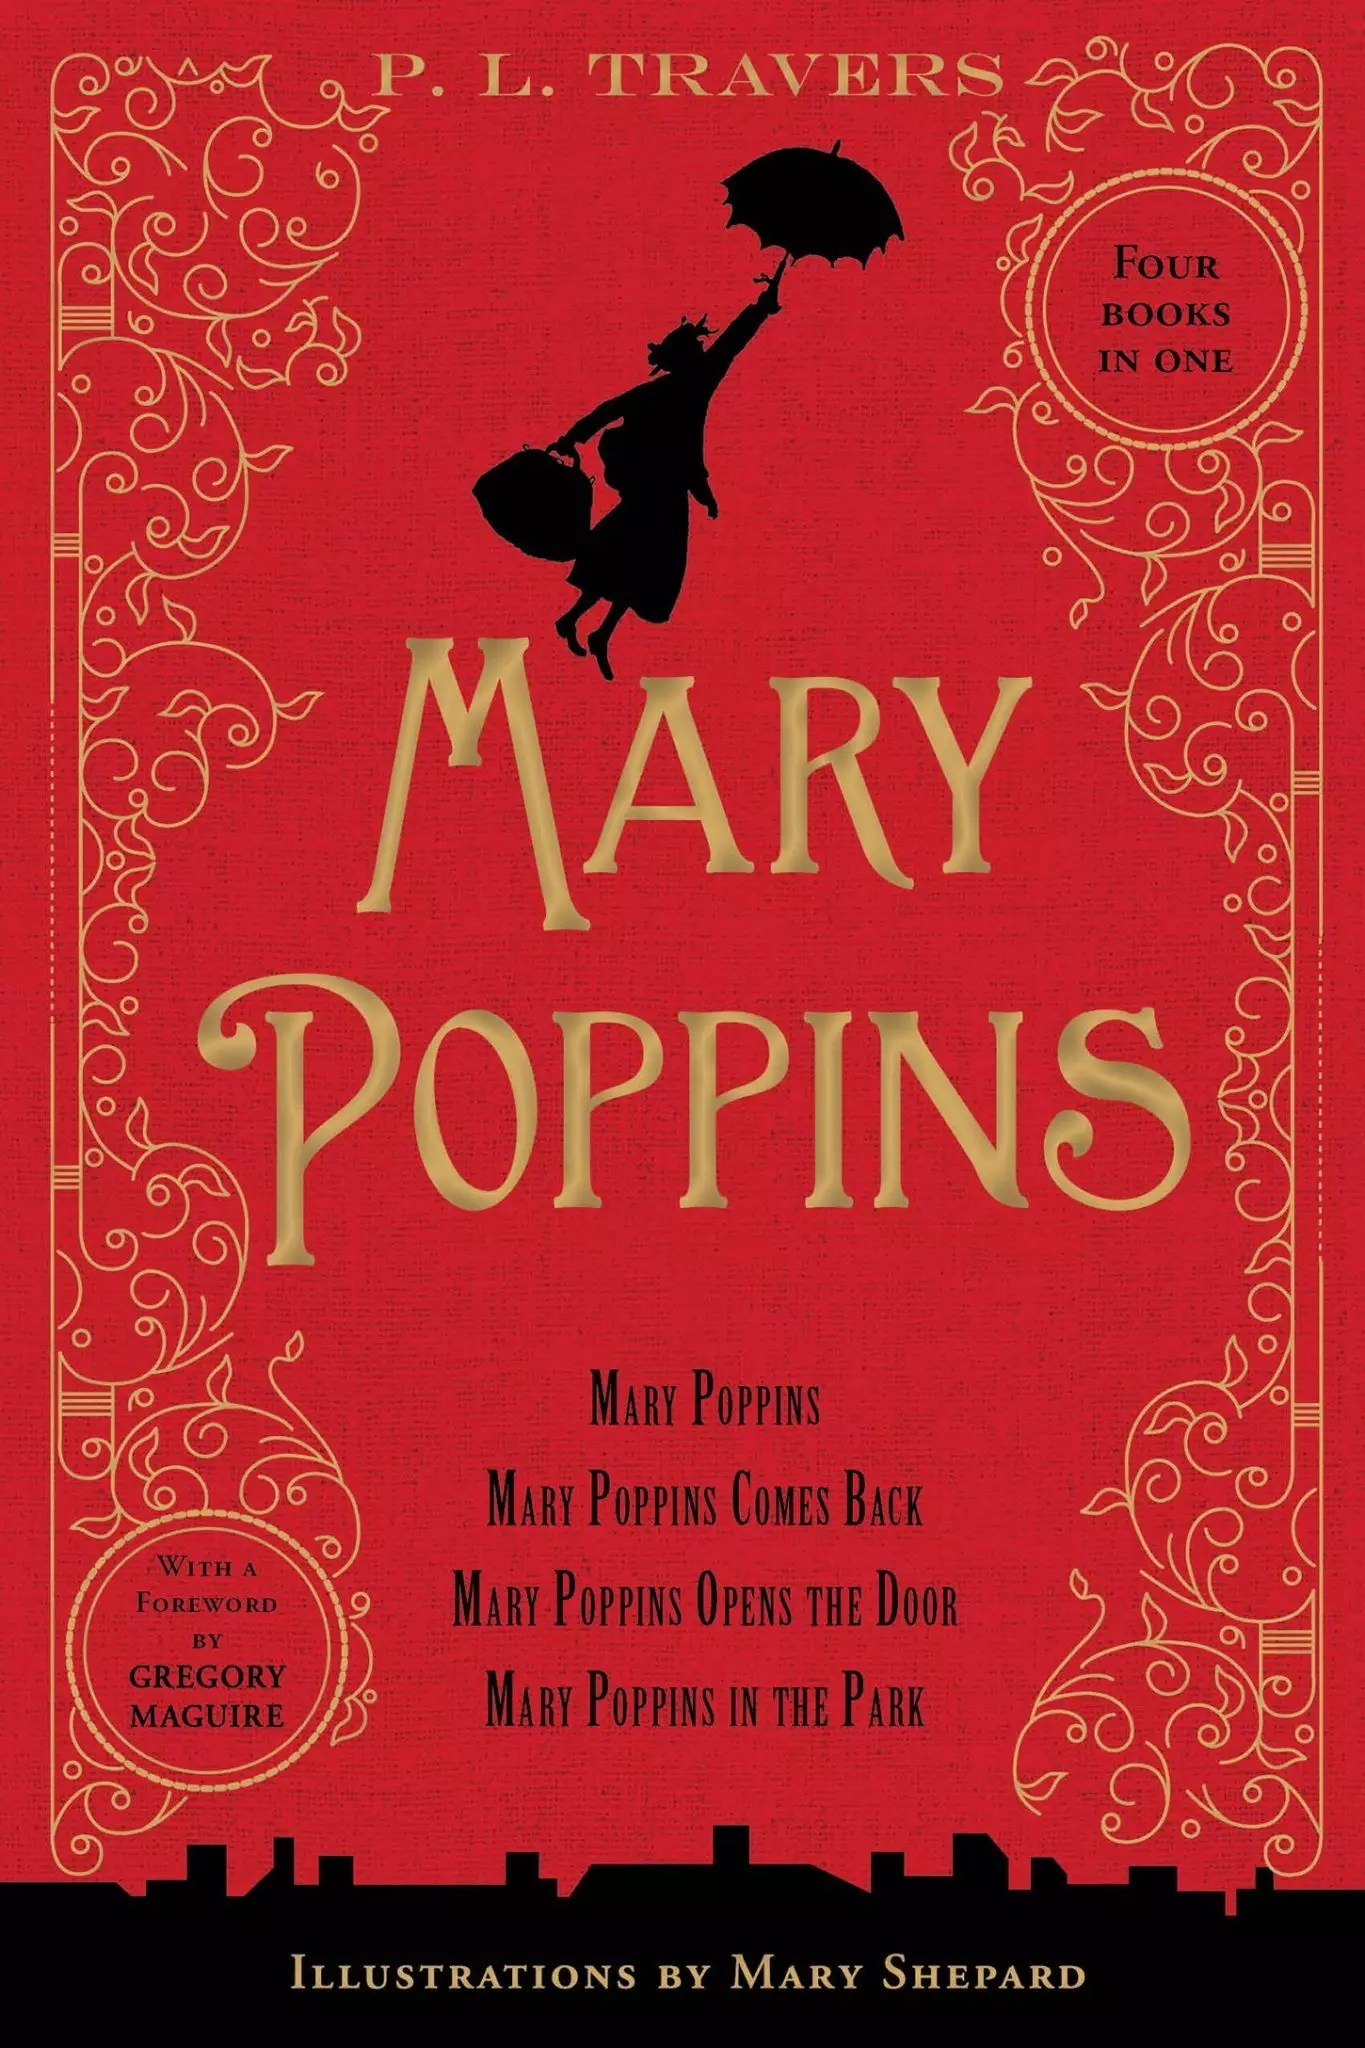 PL Travers Mary Poppins 80th anniversary collection cover